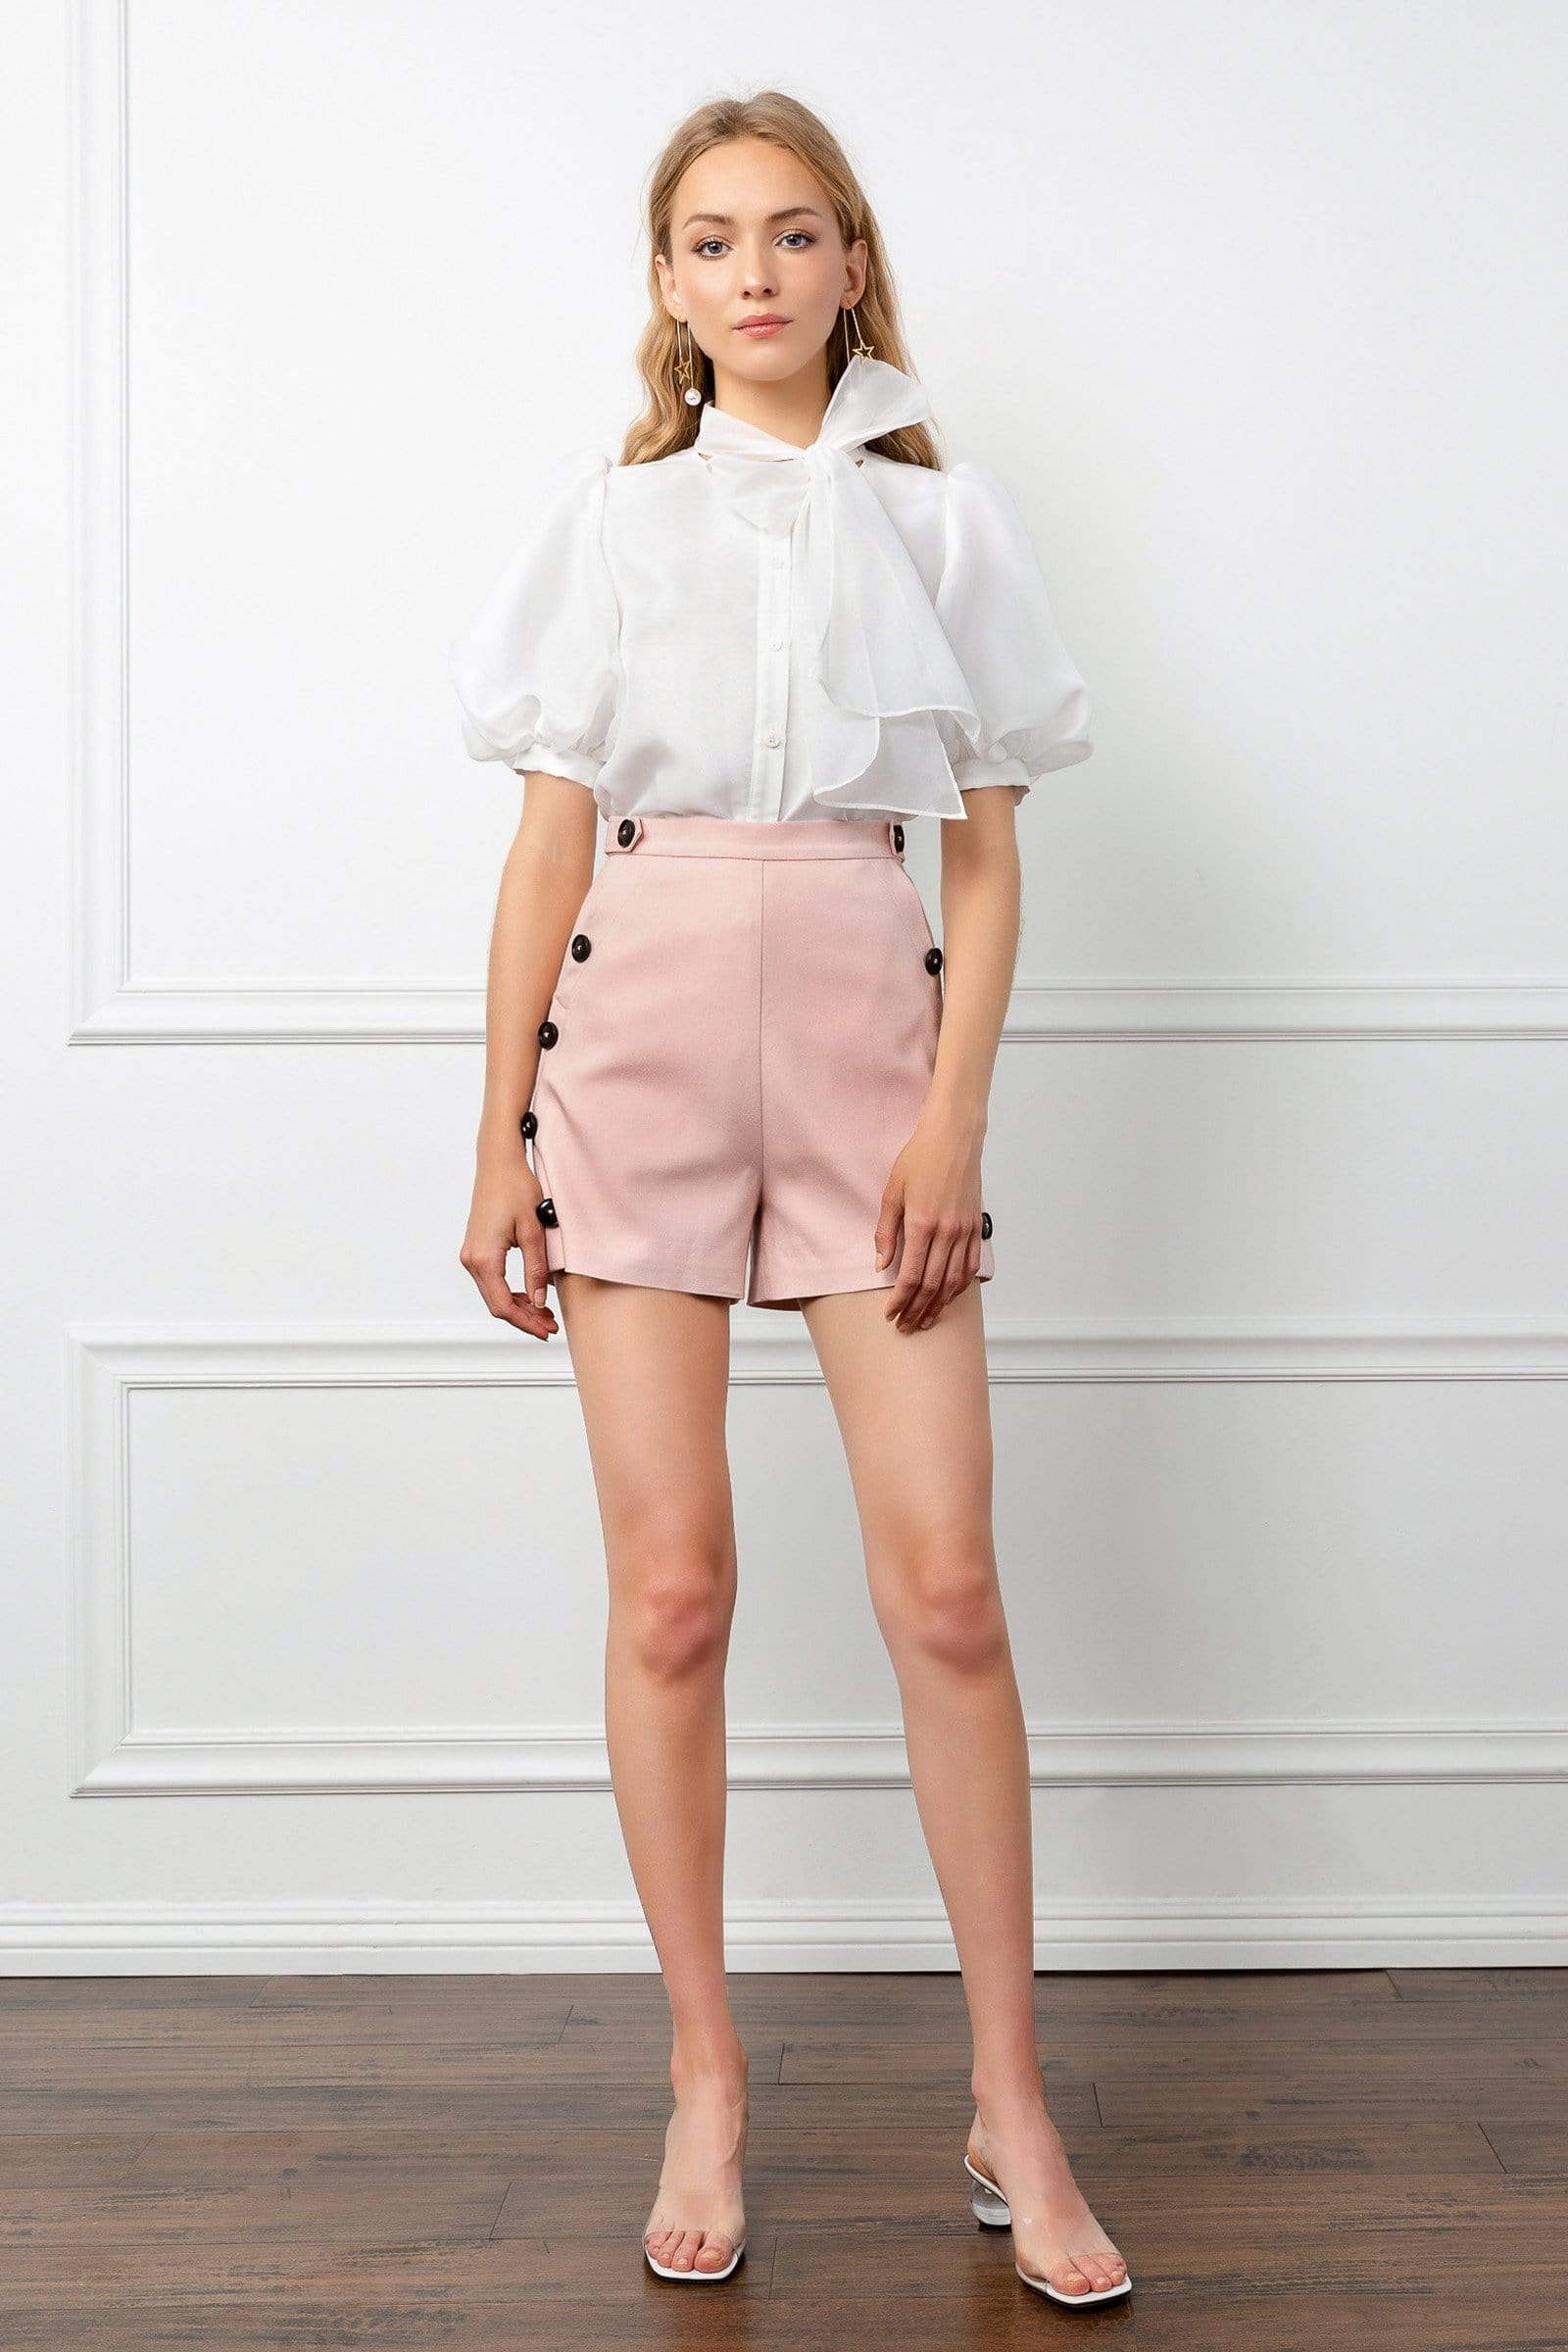 Silky Pink High Waist Shorts with Button Details | J.ING women's shorts